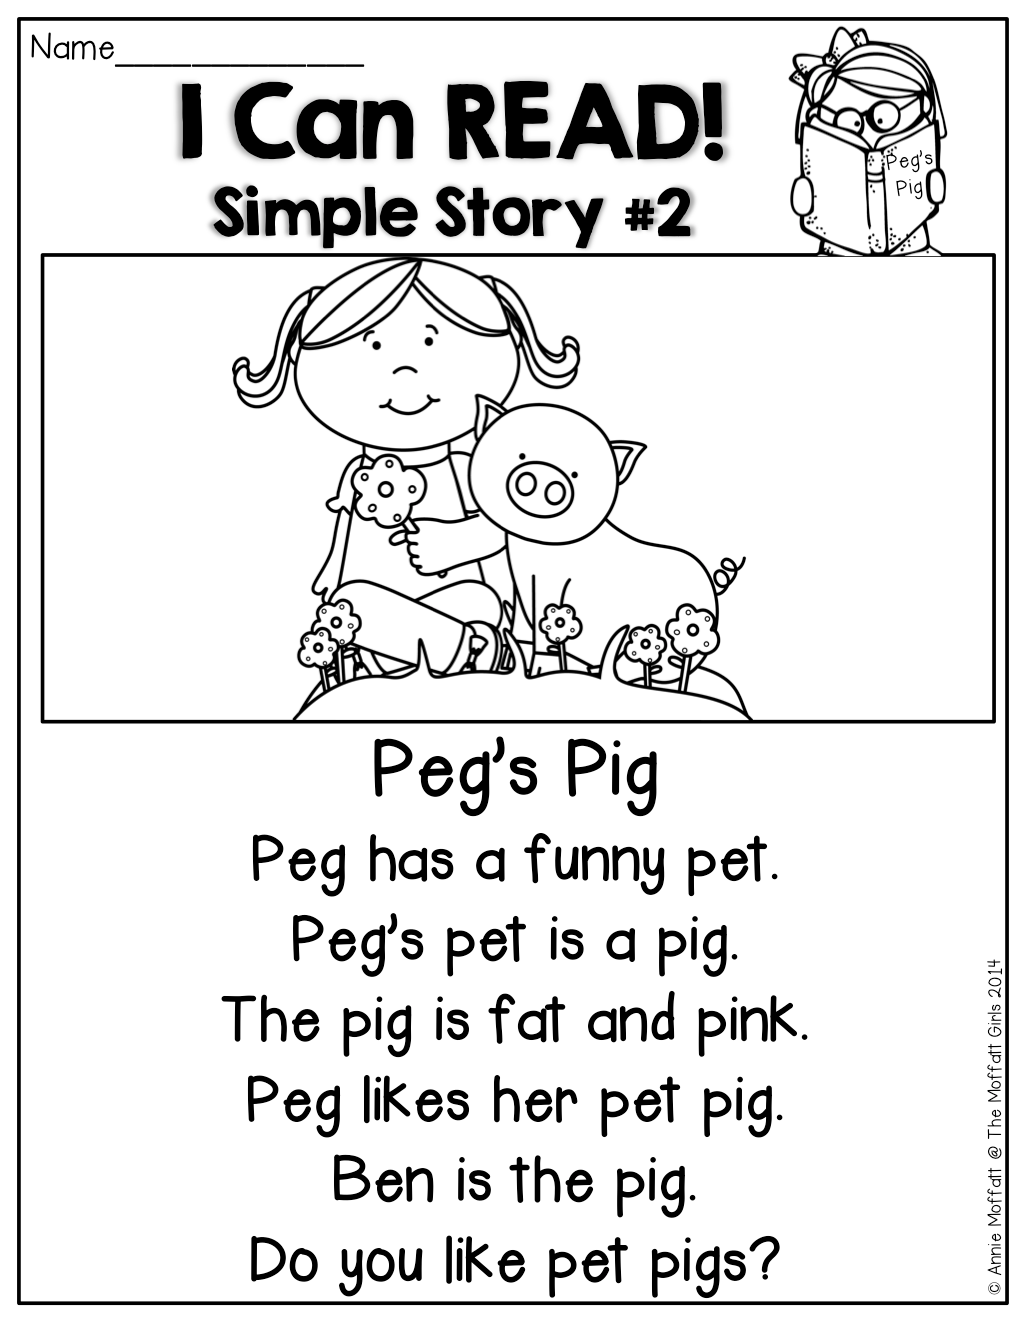 Simple Stories Made Of Sight Words And Cvc Words That Kids Can Read Perfect For Working On